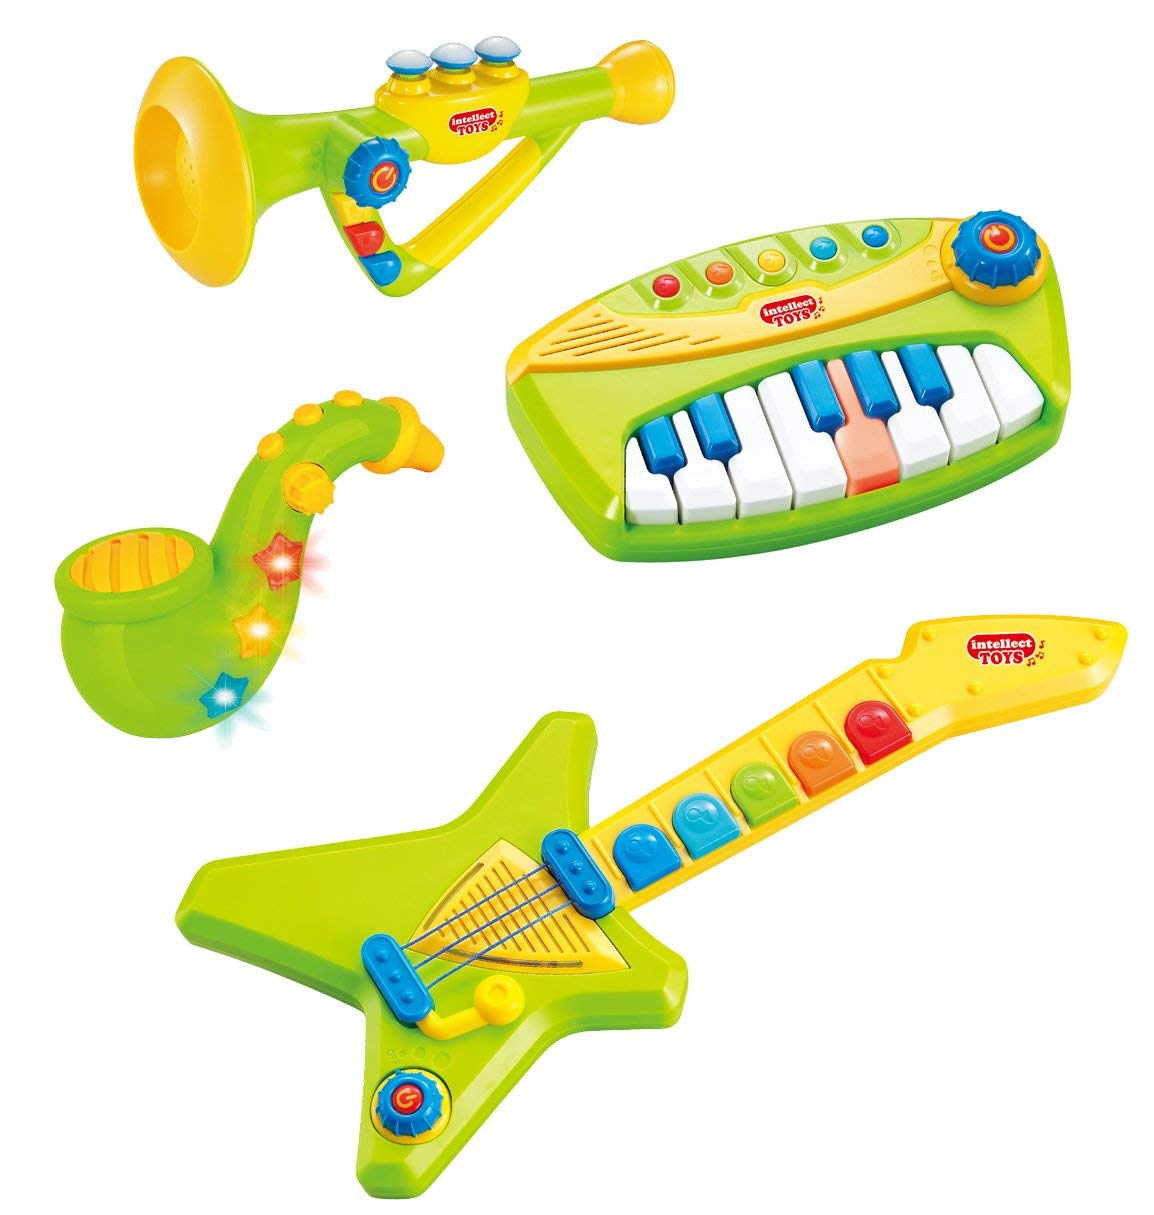 Liberty Imports 4-Piece Band Musical Toy Instruments Playset